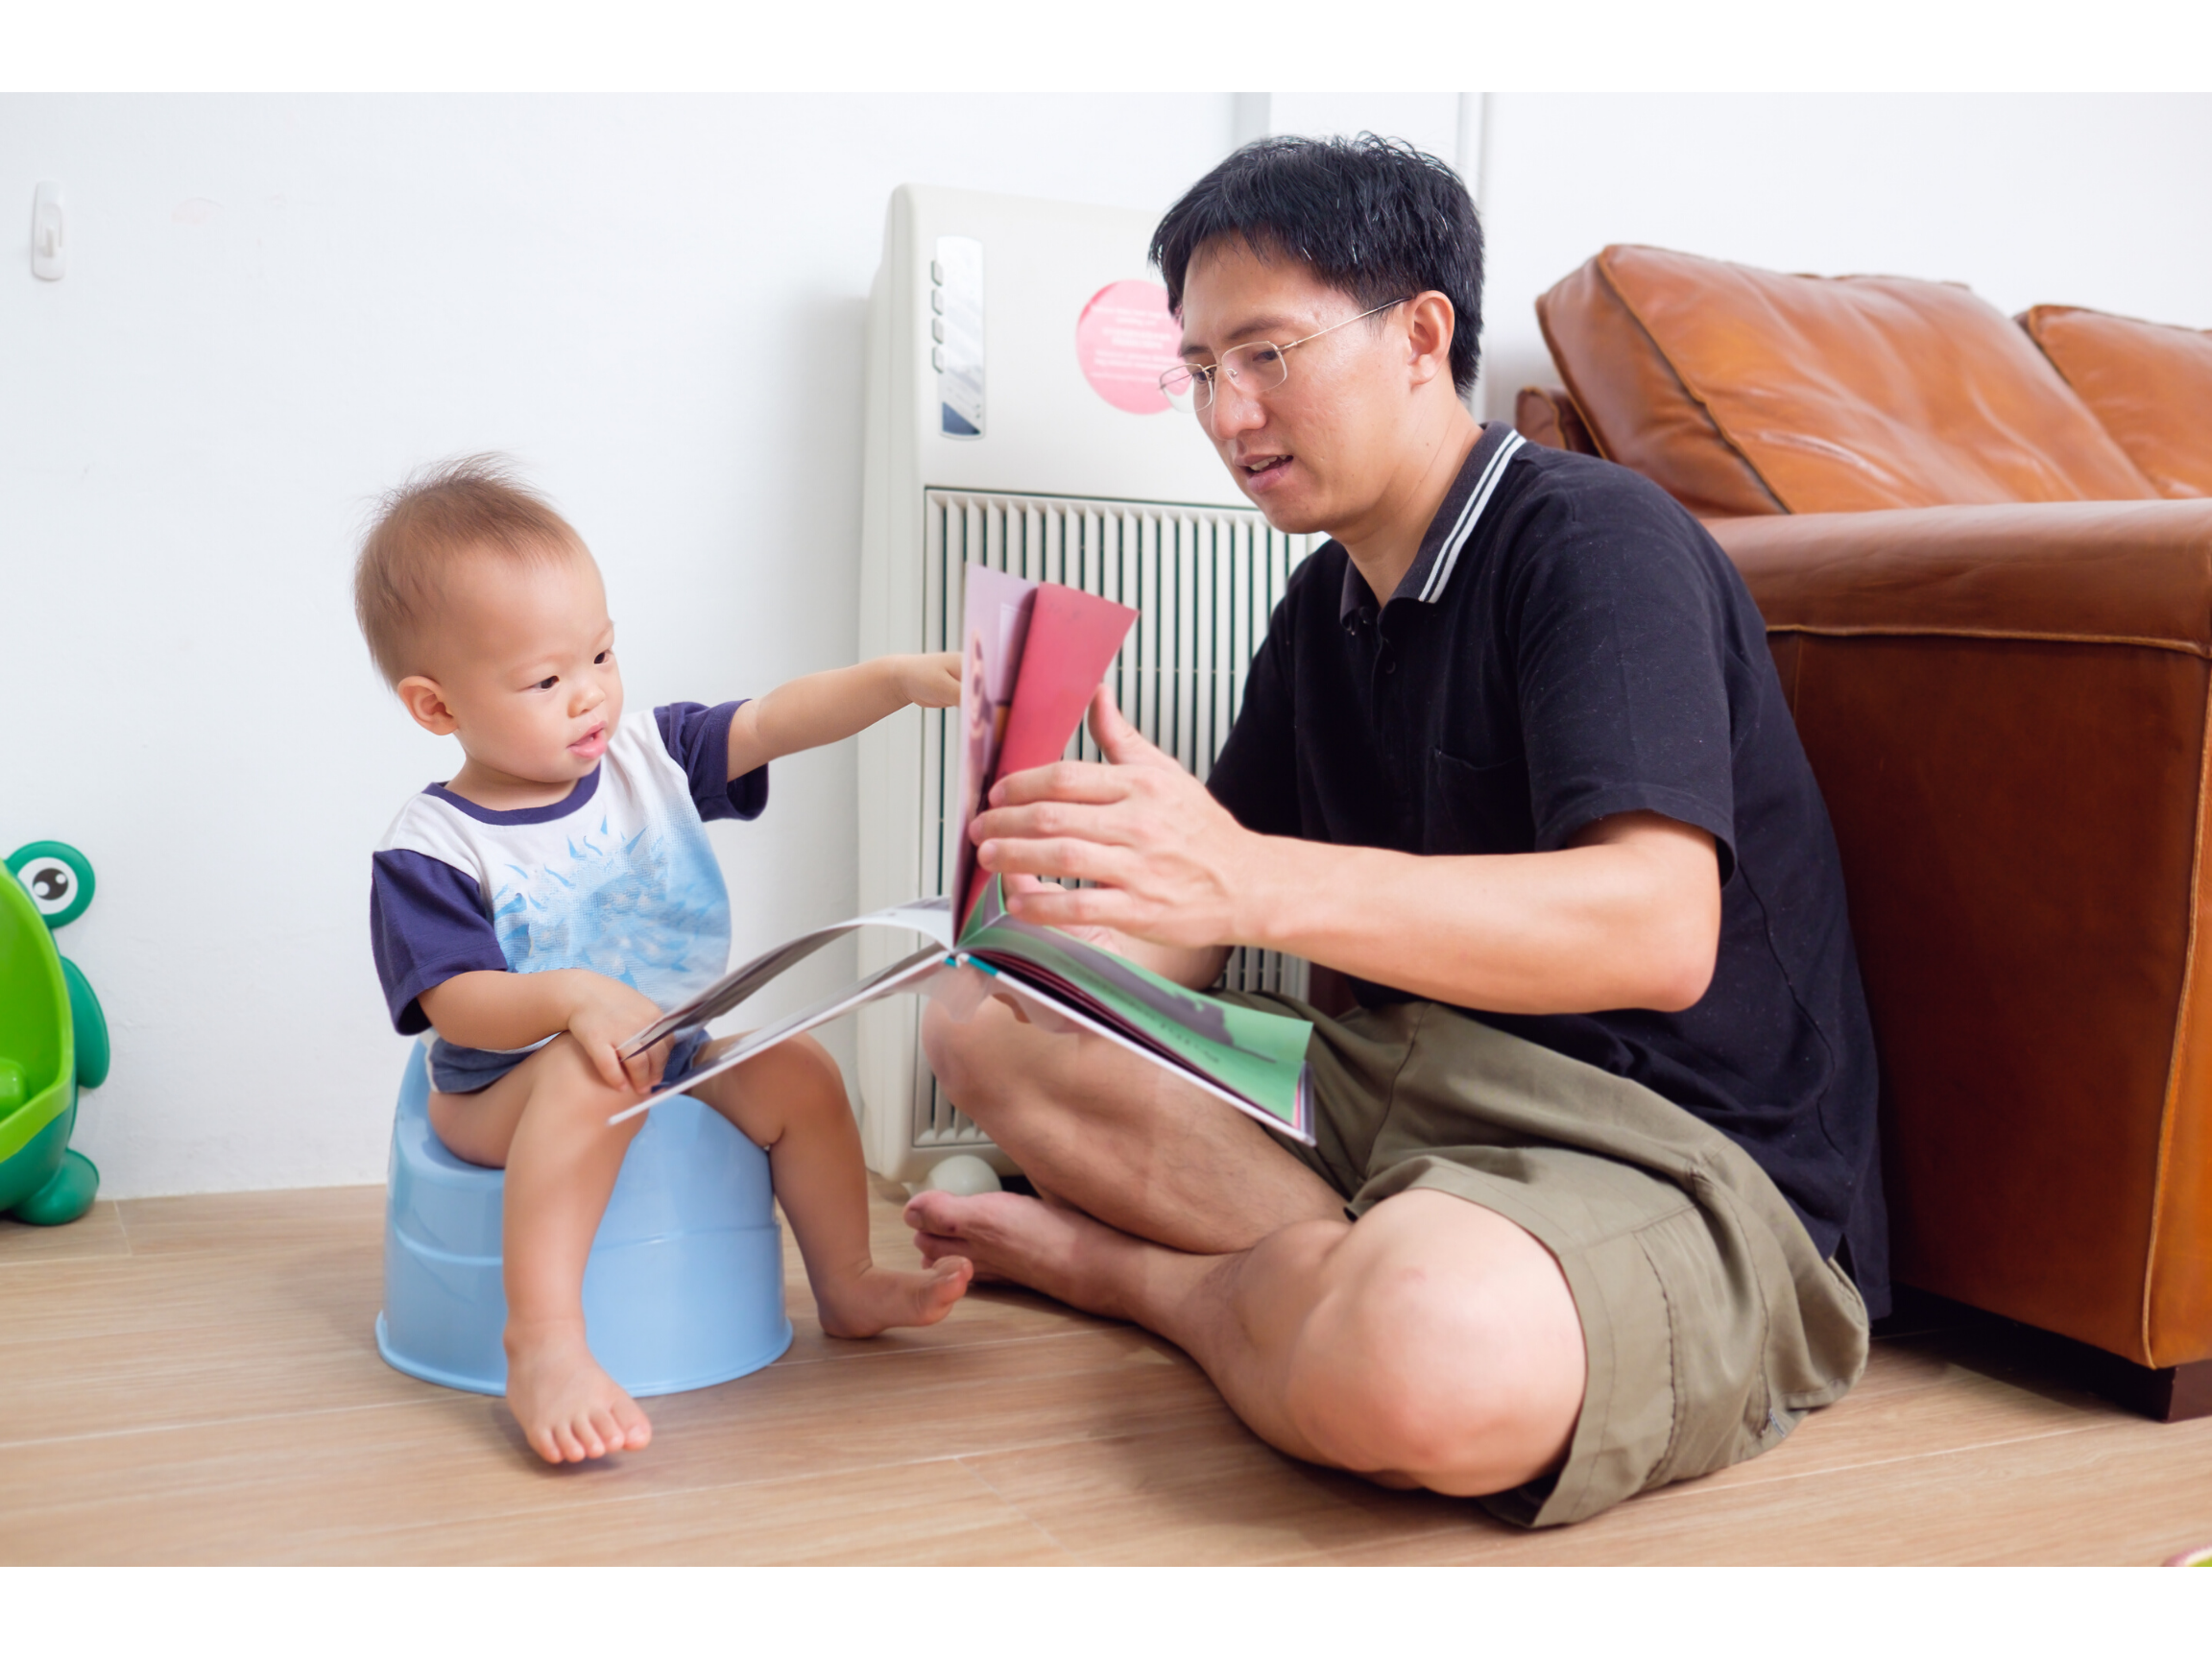 Dad reads to his child in the living room while they start to potty train